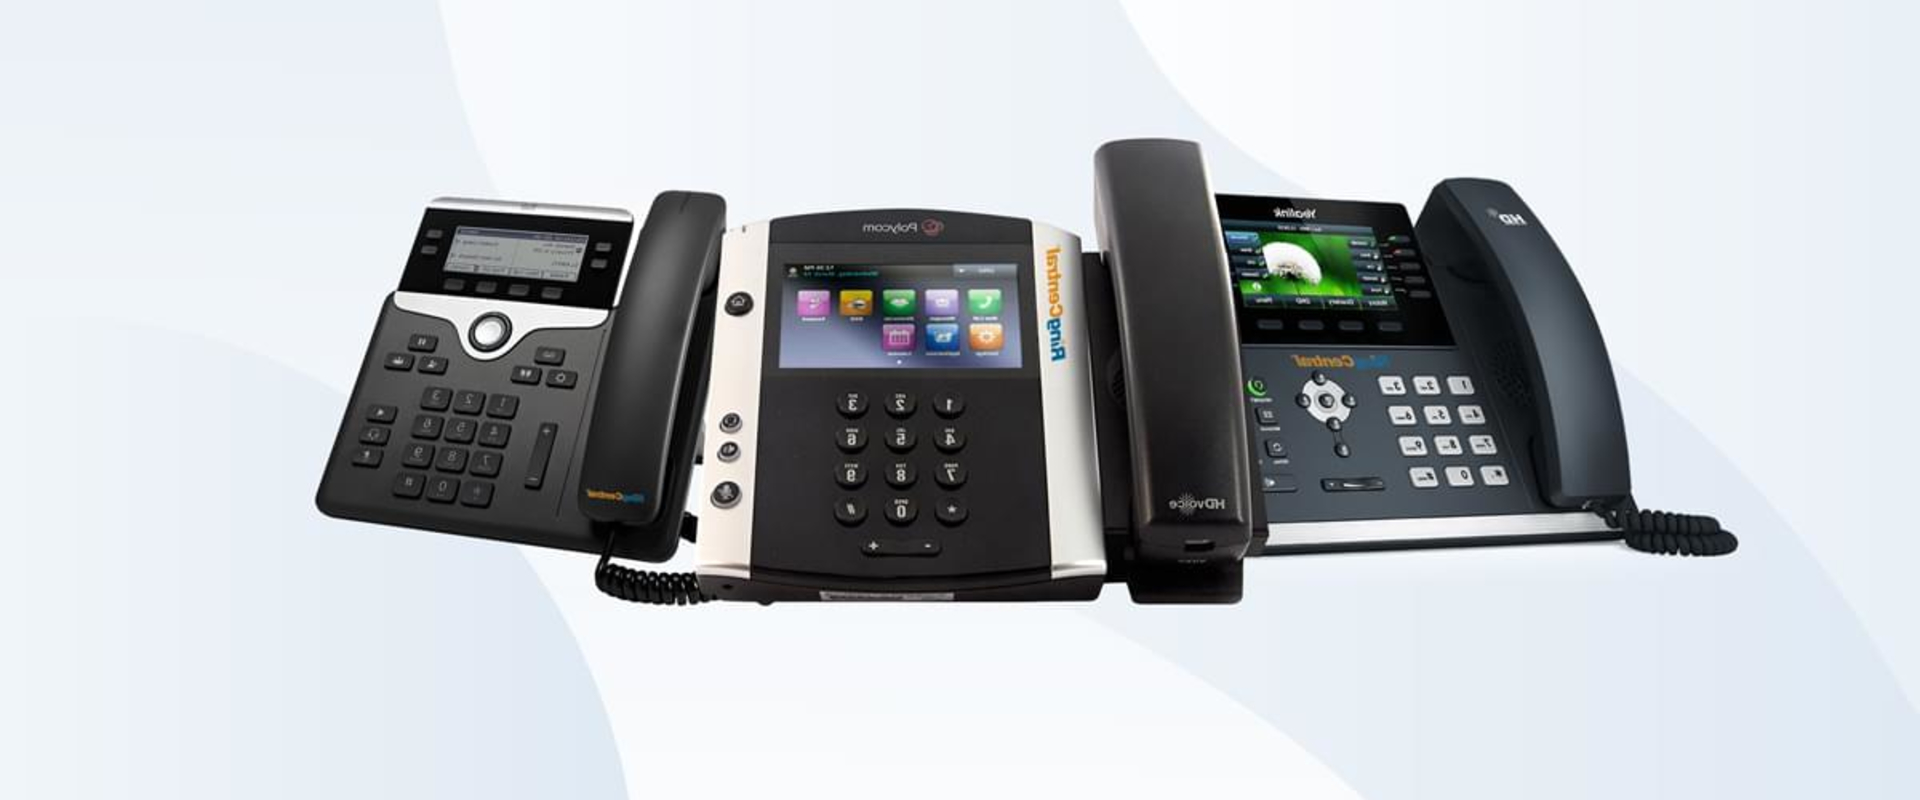 what type of contract will we have to sign for ringcentral's voip service?